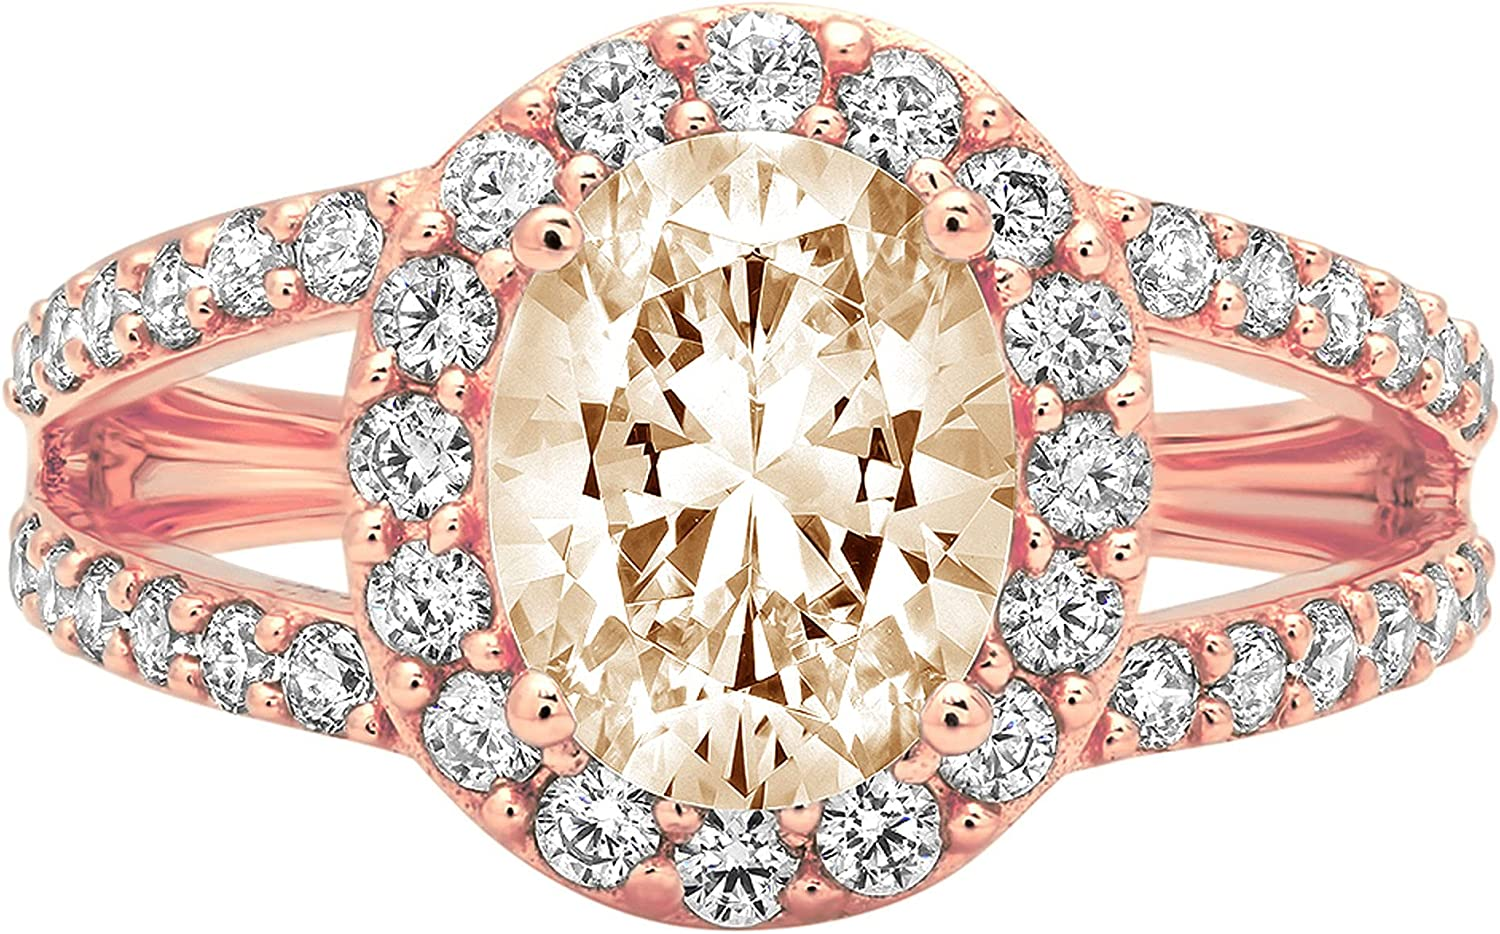 2.24 ct Oval Cut Solitaire with Opening large release sale Accent shank Designer Halo Super beauty product restock quality top split